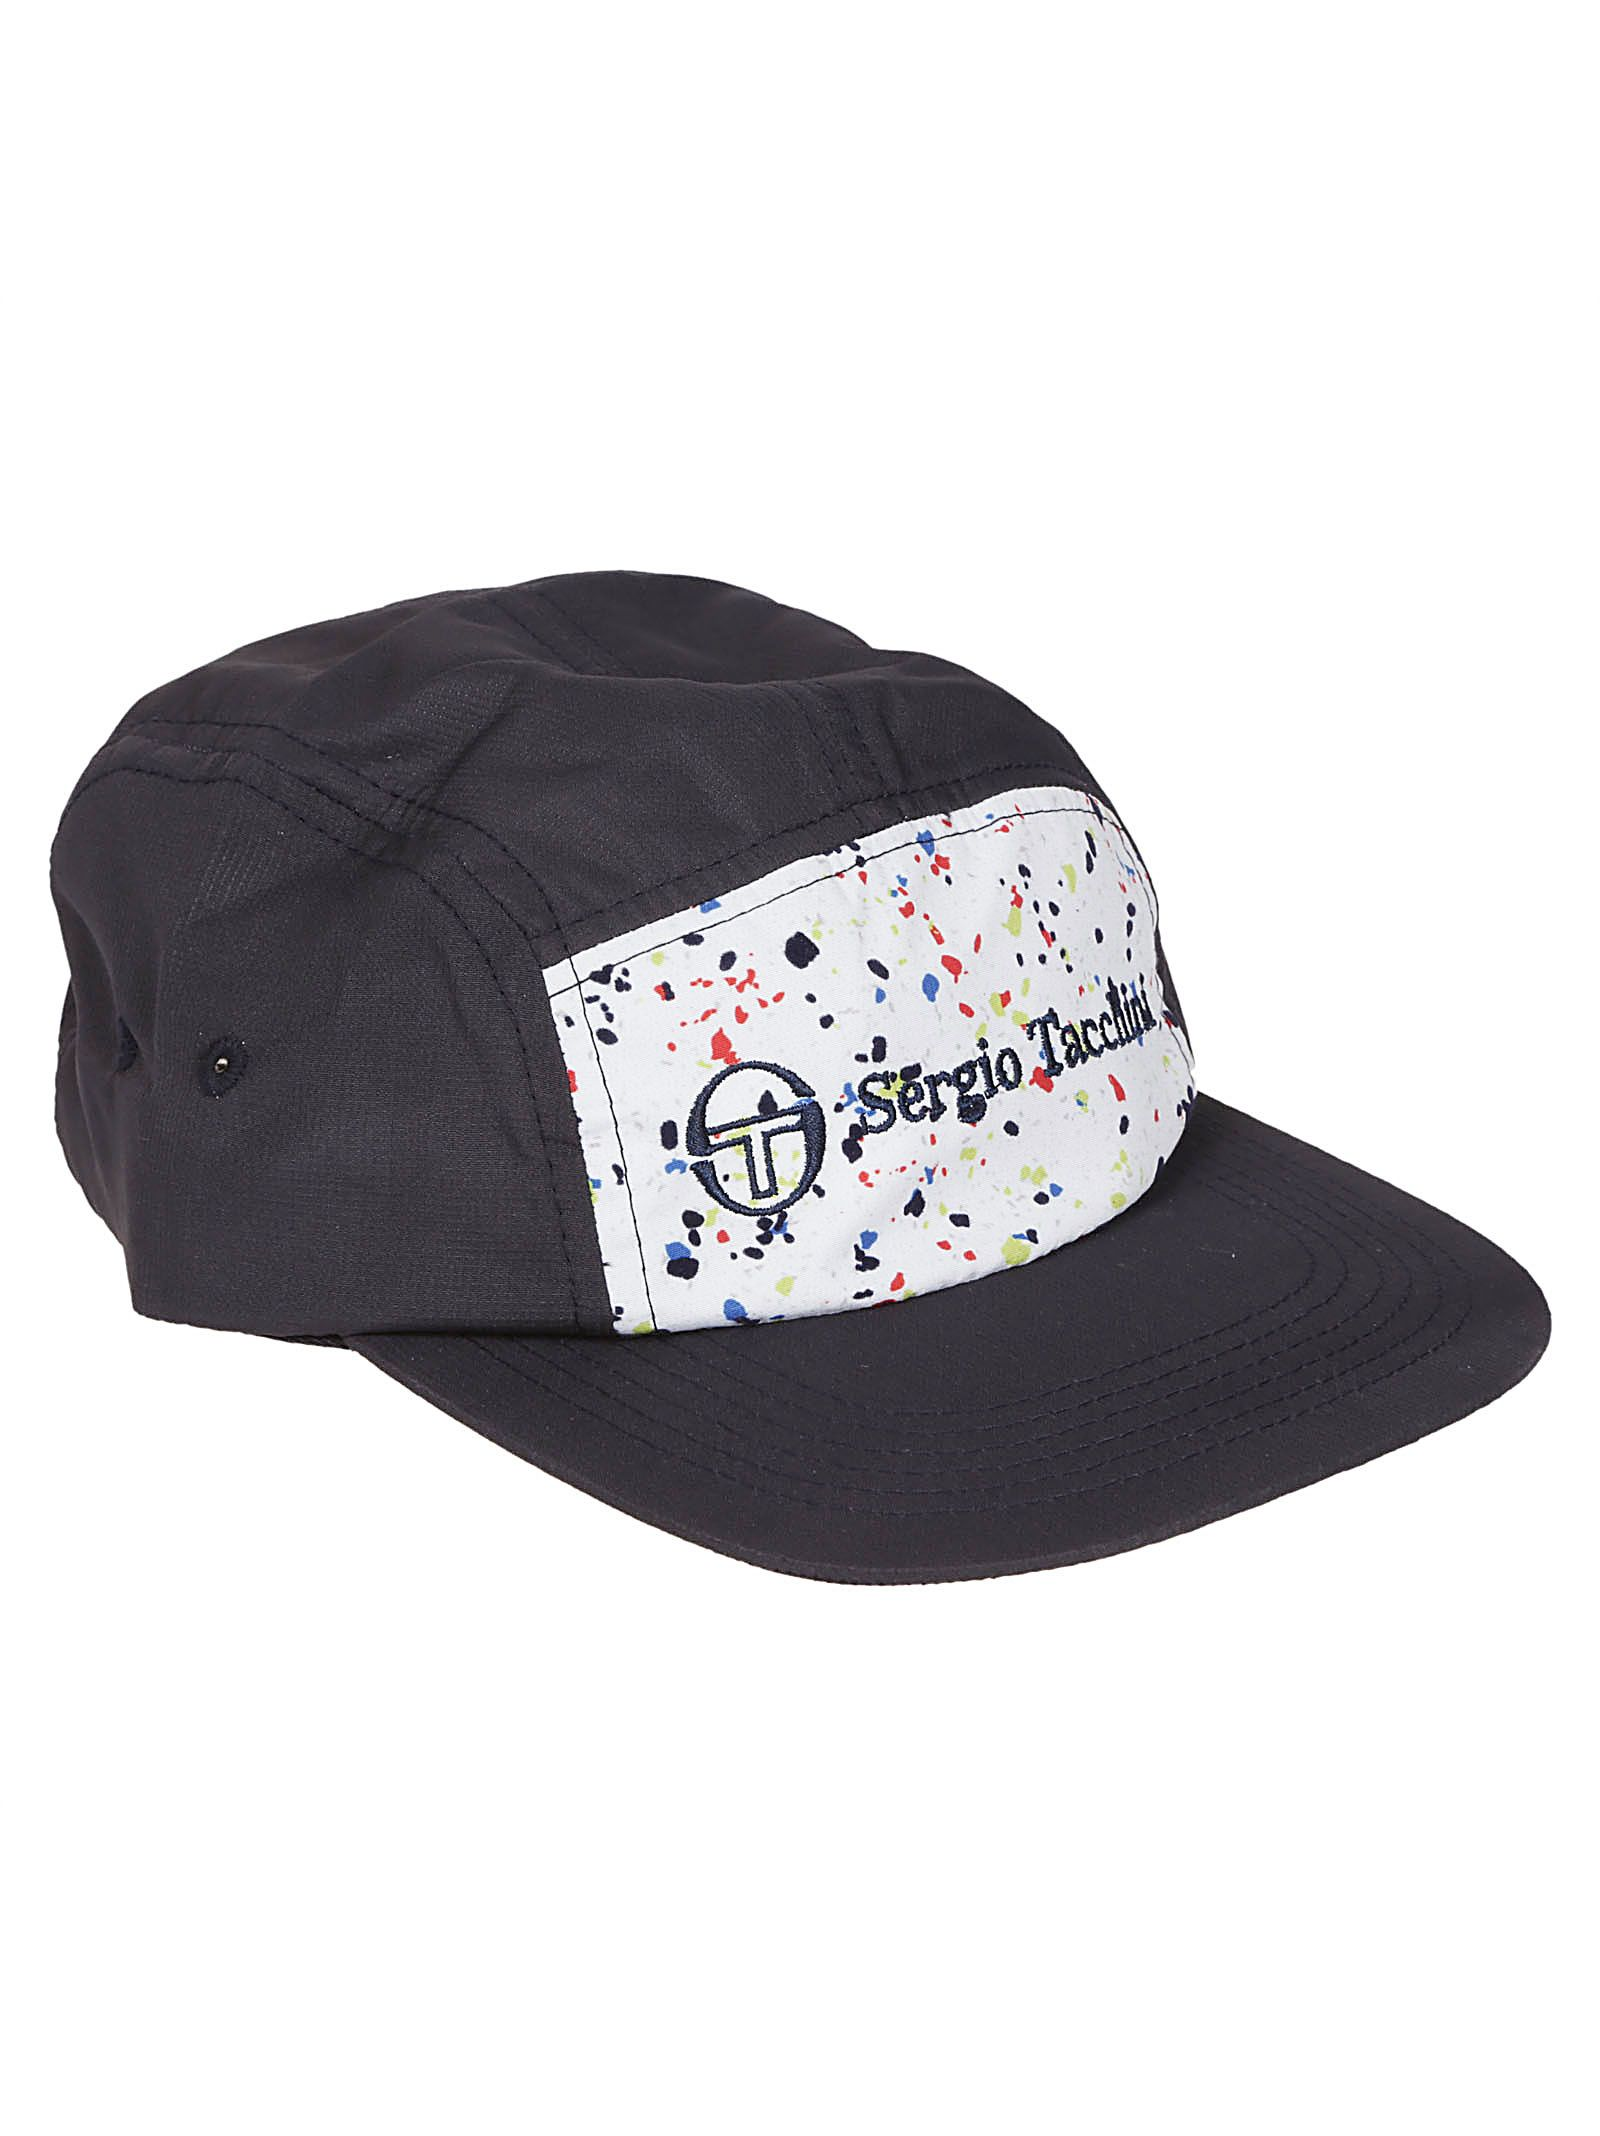 SERGIO TACCHINI SPECKLED LOGO PATCH HAT